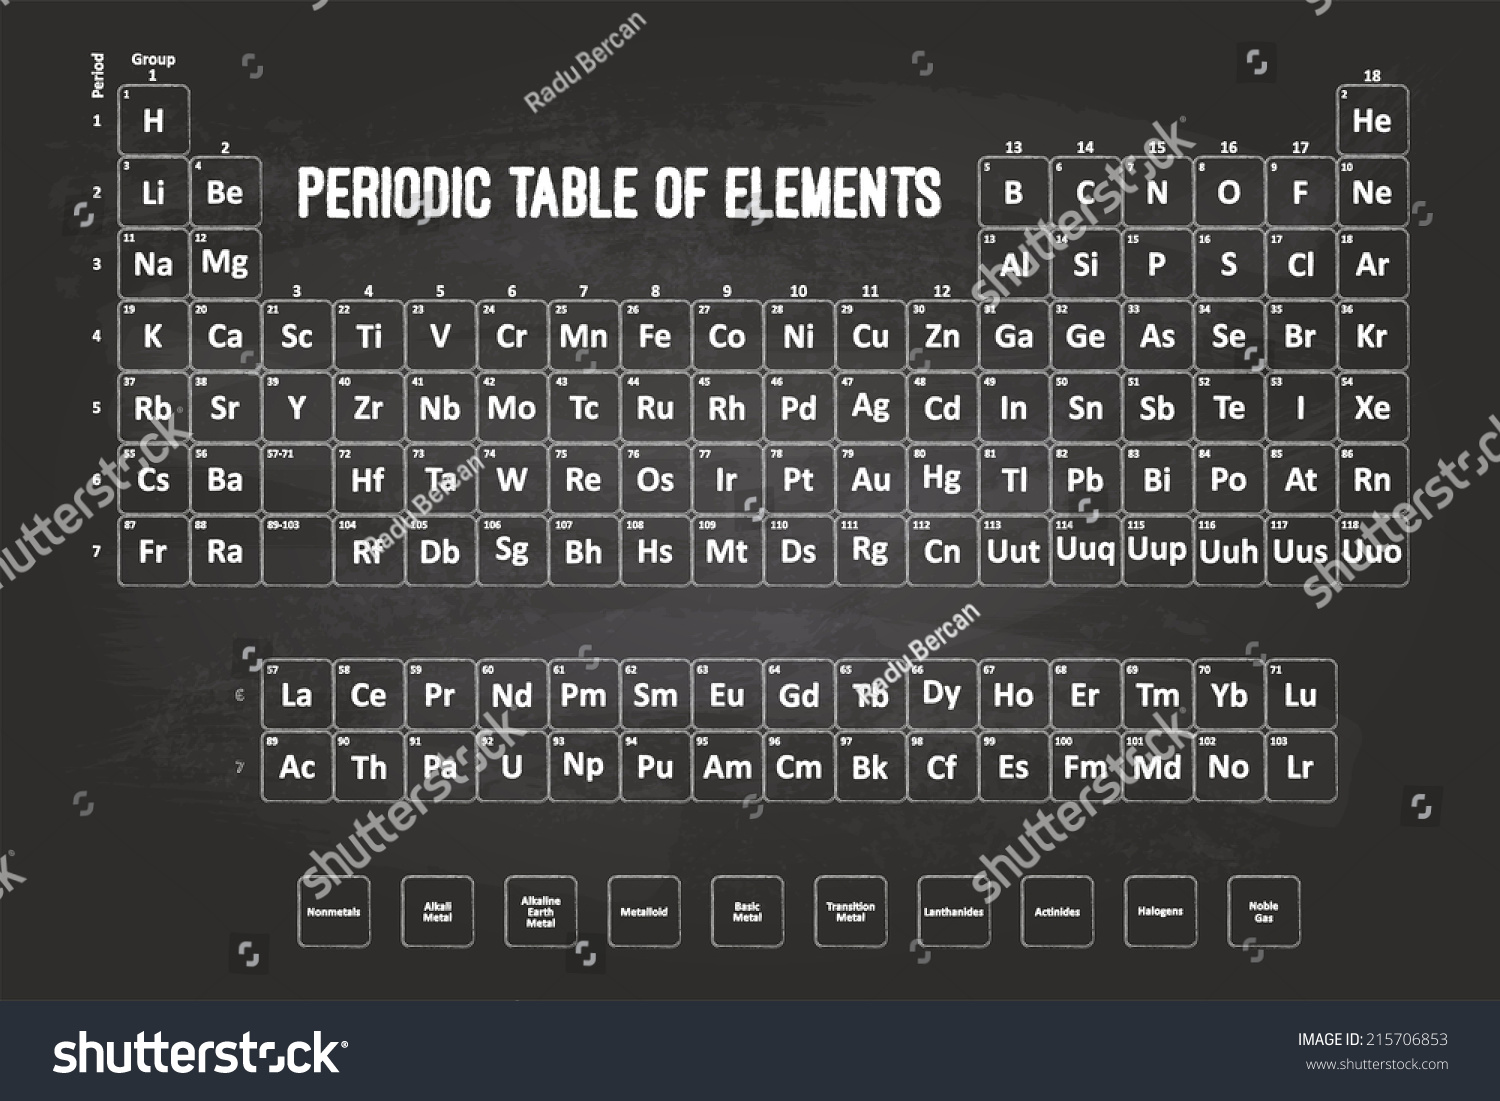 Periodic table elements chalk font on stock illustration 215706853 periodic table of elements with chalk font on black chalkboard gamestrikefo Images